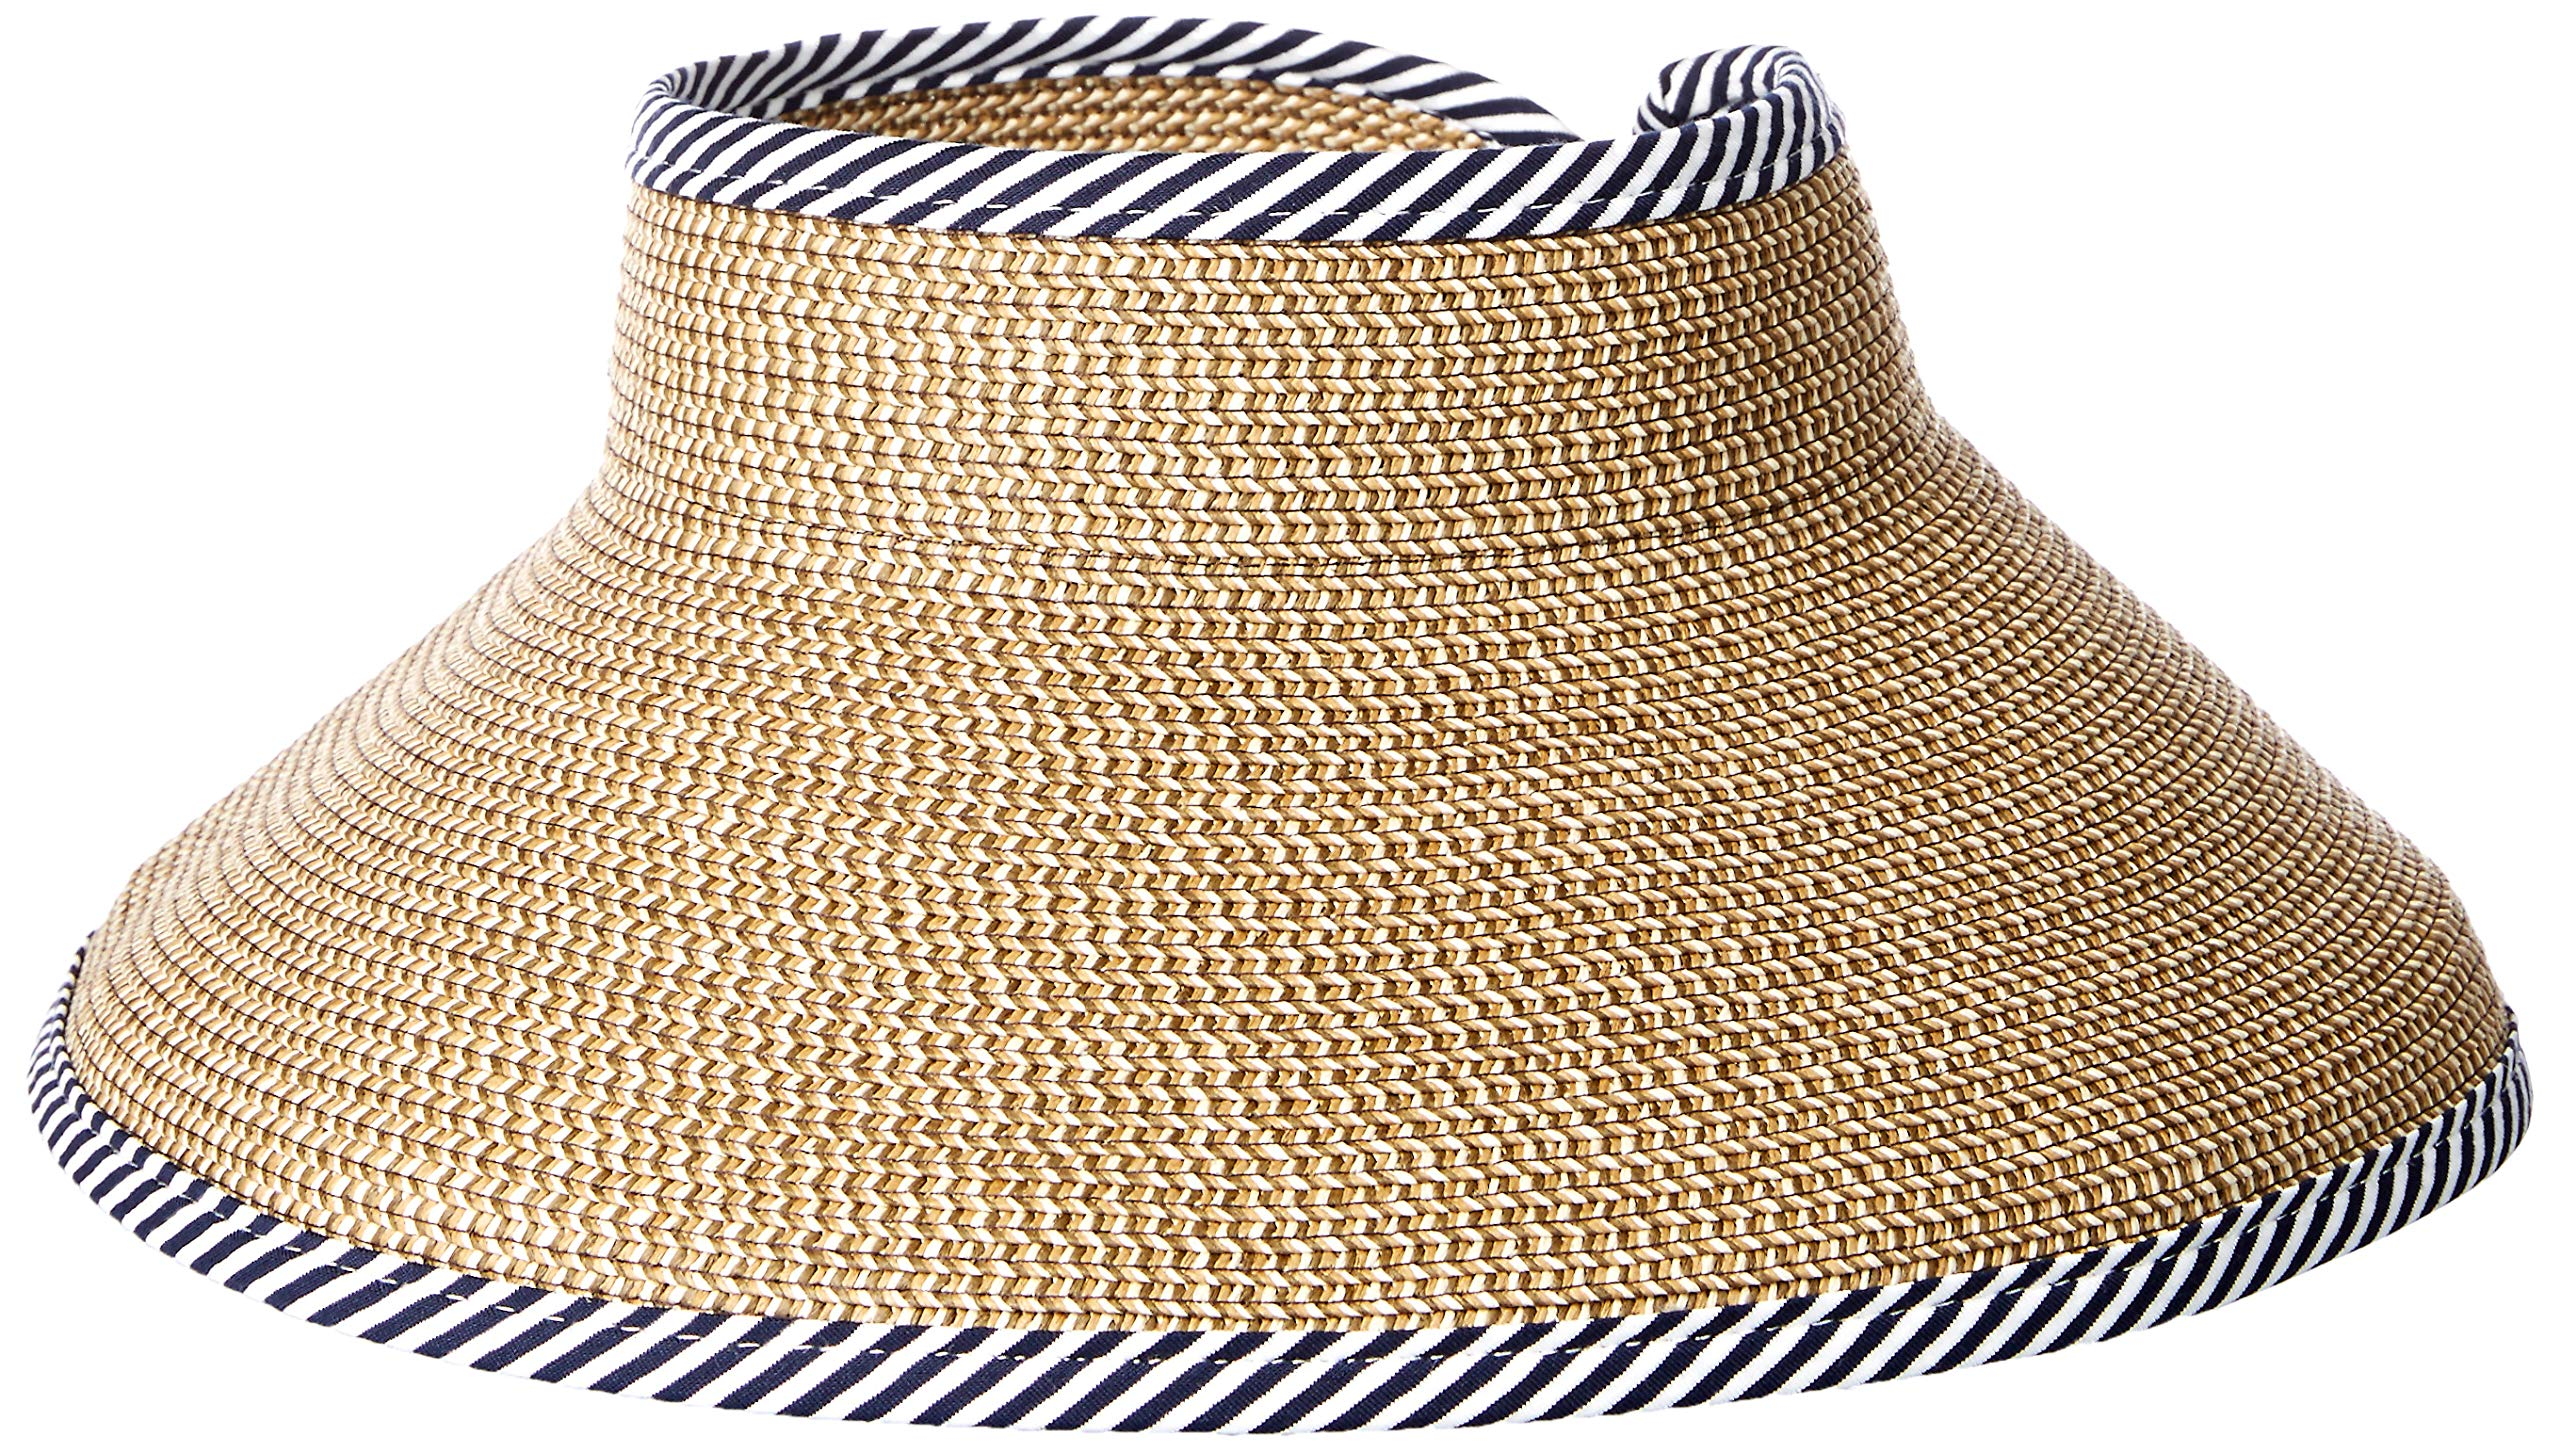 Roxy Women's Kiss The Ocean Straw Visor, natural, 1 SZ